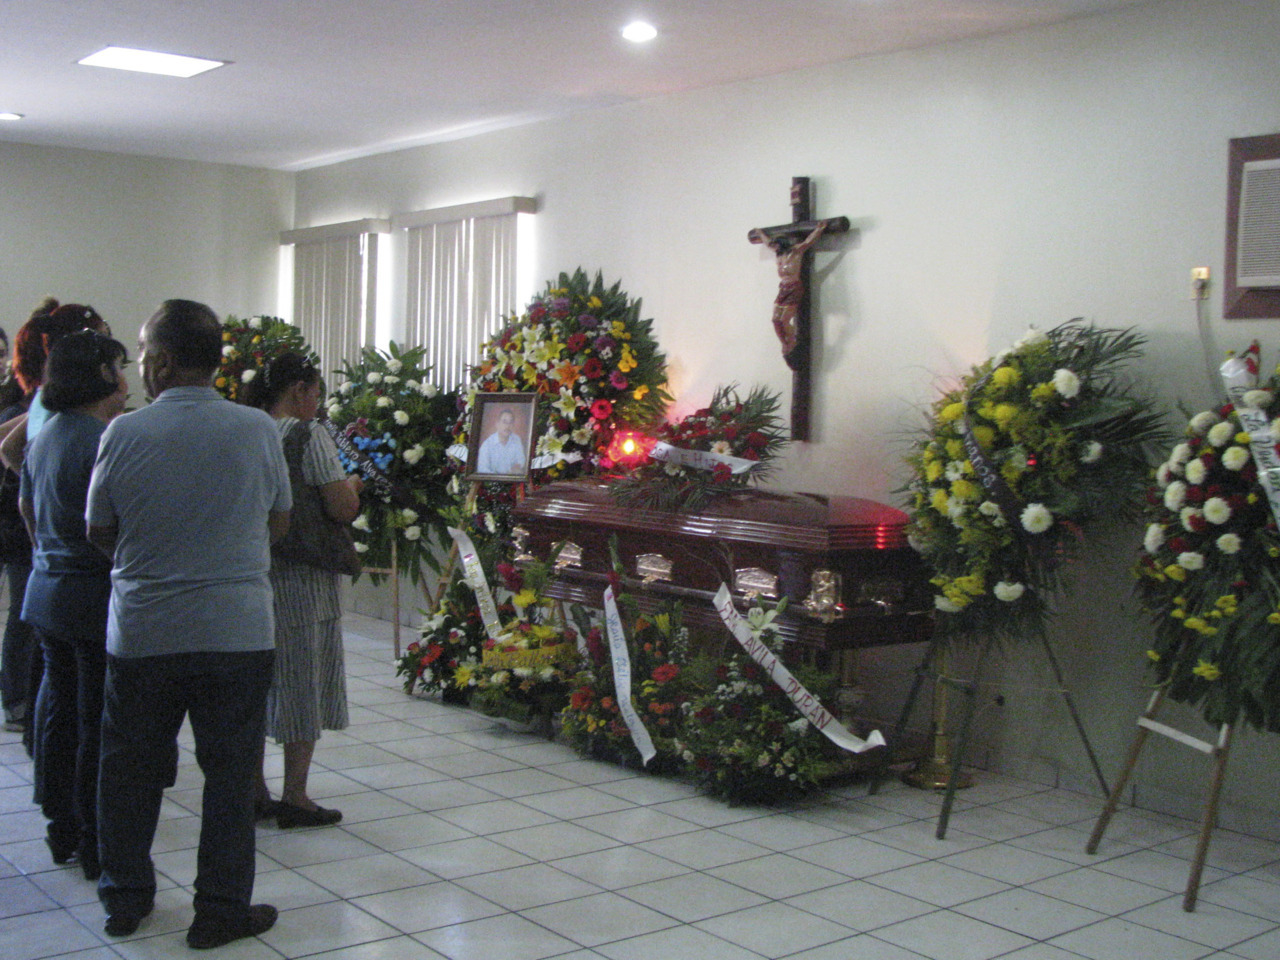 Marco Avila, a reporter in Sonora, Mexico was buried over the weekend after being found in a black garbage bag.  He's the sixth current or former journalist killed in Mexico in less than a month. Considering the number of gruesome atrocities committed by the country's drug cartels (the latest being the 49 decapitated, hand-less, foot-less bodies found on the side of a highway), it makes sense that the people covering the news in these areas have become targets too.  [Photo: REUTERS/Stringer] THE ATLANTIC WIRE: Being a journalist in Mexico can be deadly